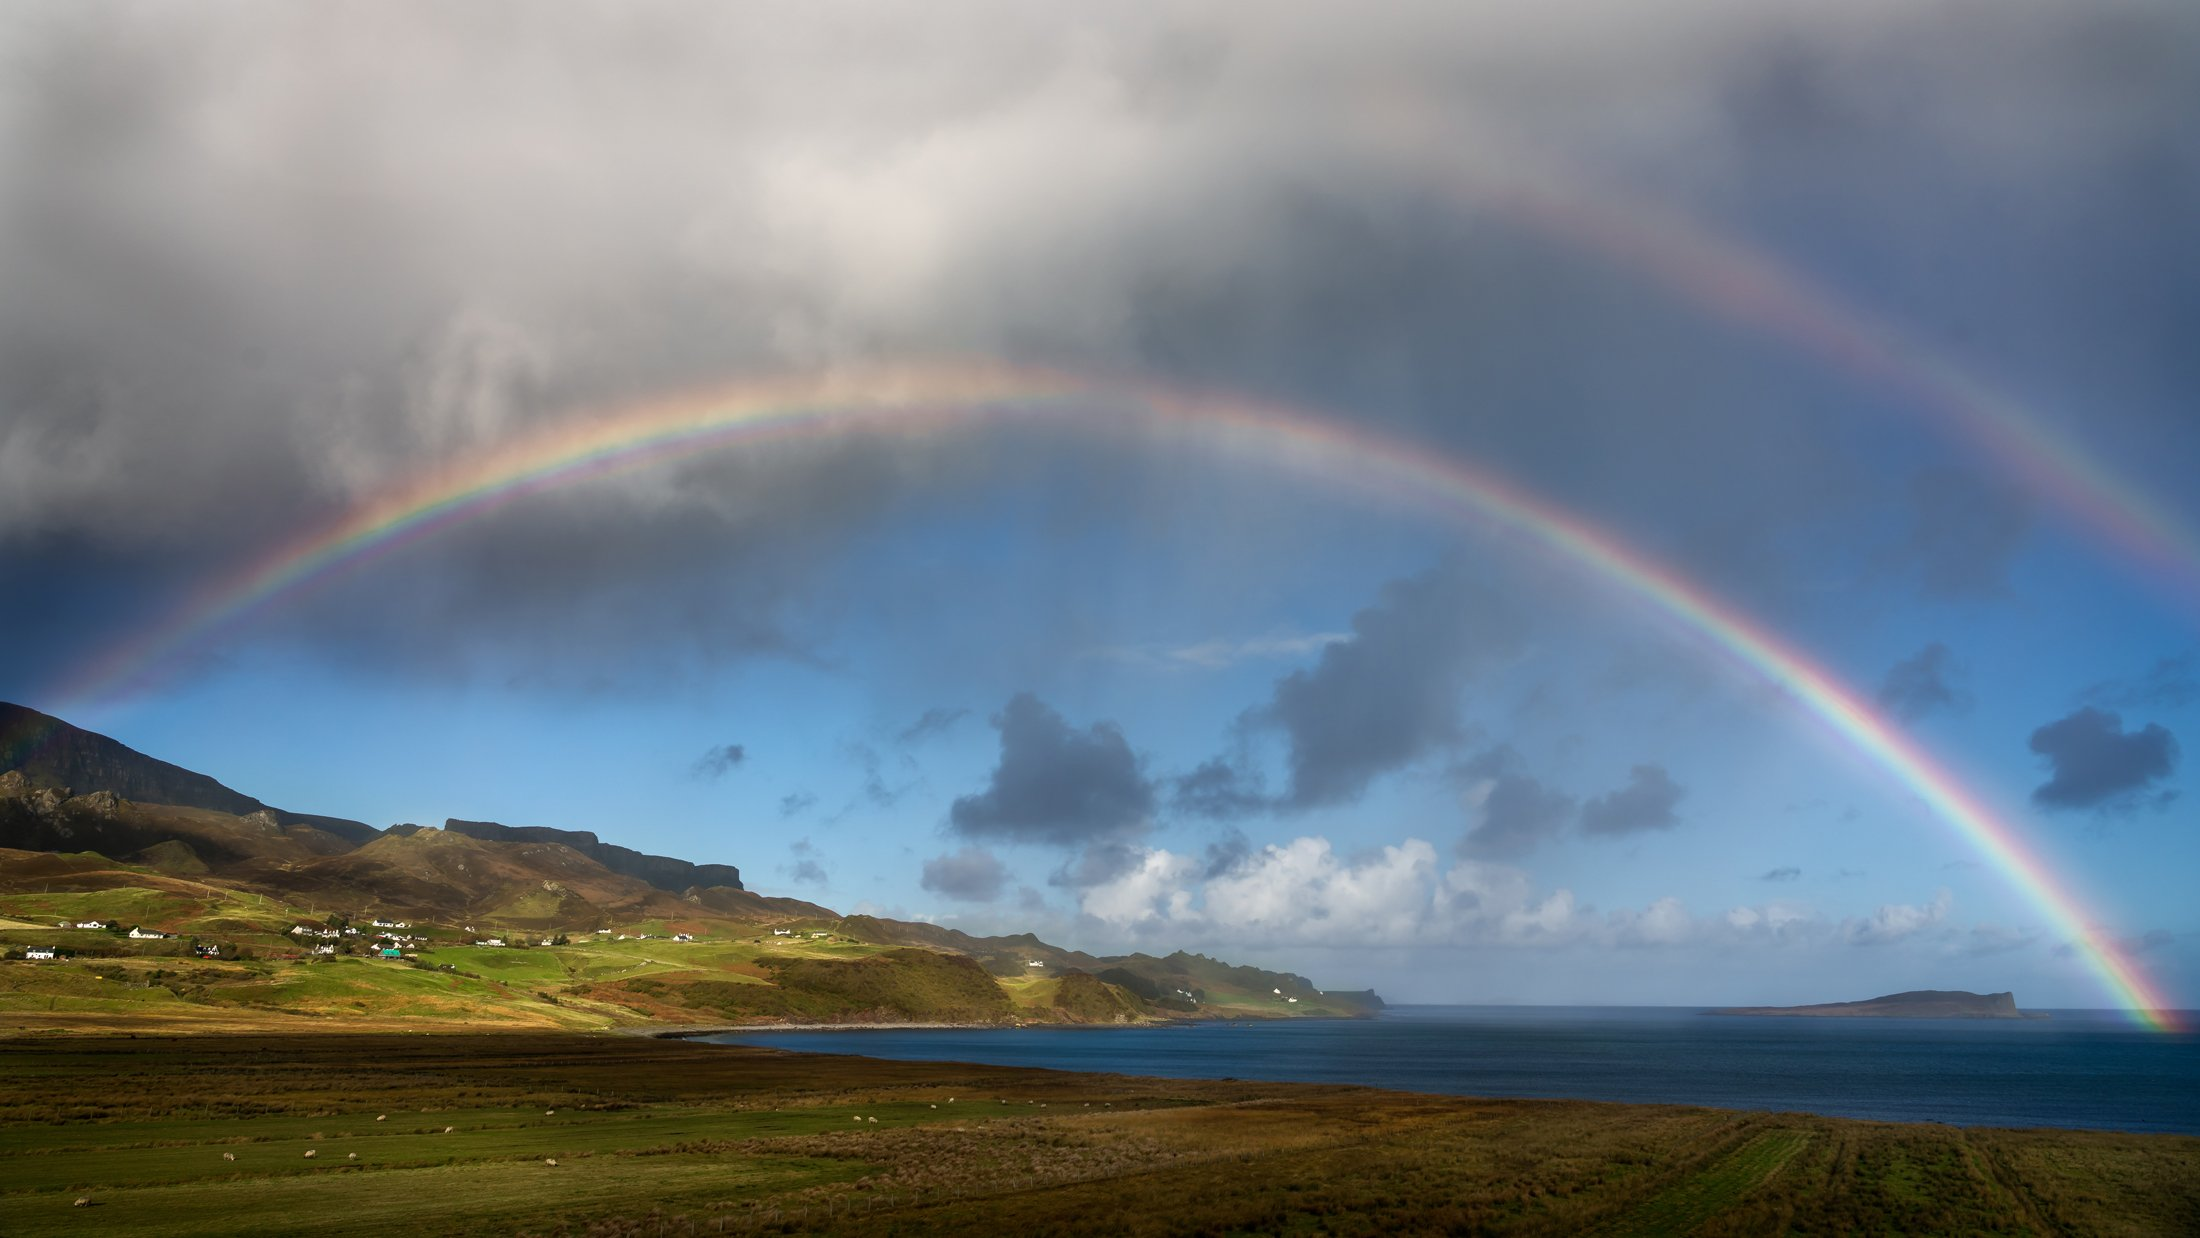 A double rainbow arcs above the Isle of Skye, one of many seen during the photo tour. (Glenn Davis/glenndavisphotography.com)